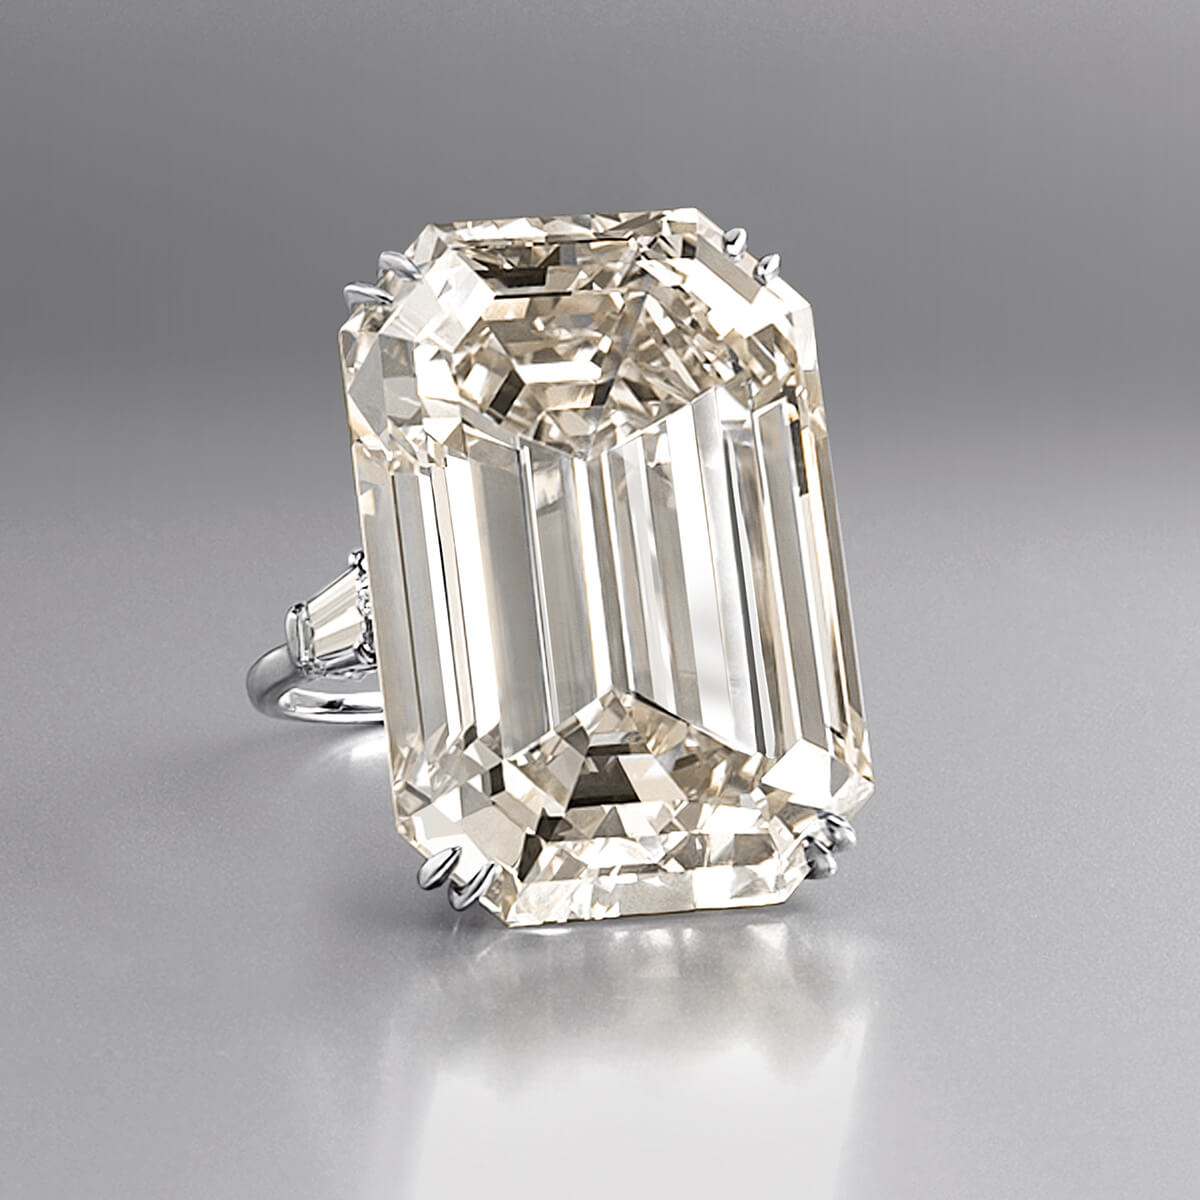 An emerald-cut diamond ring weighing 71.73 carats created from the Lesotho rough diamond